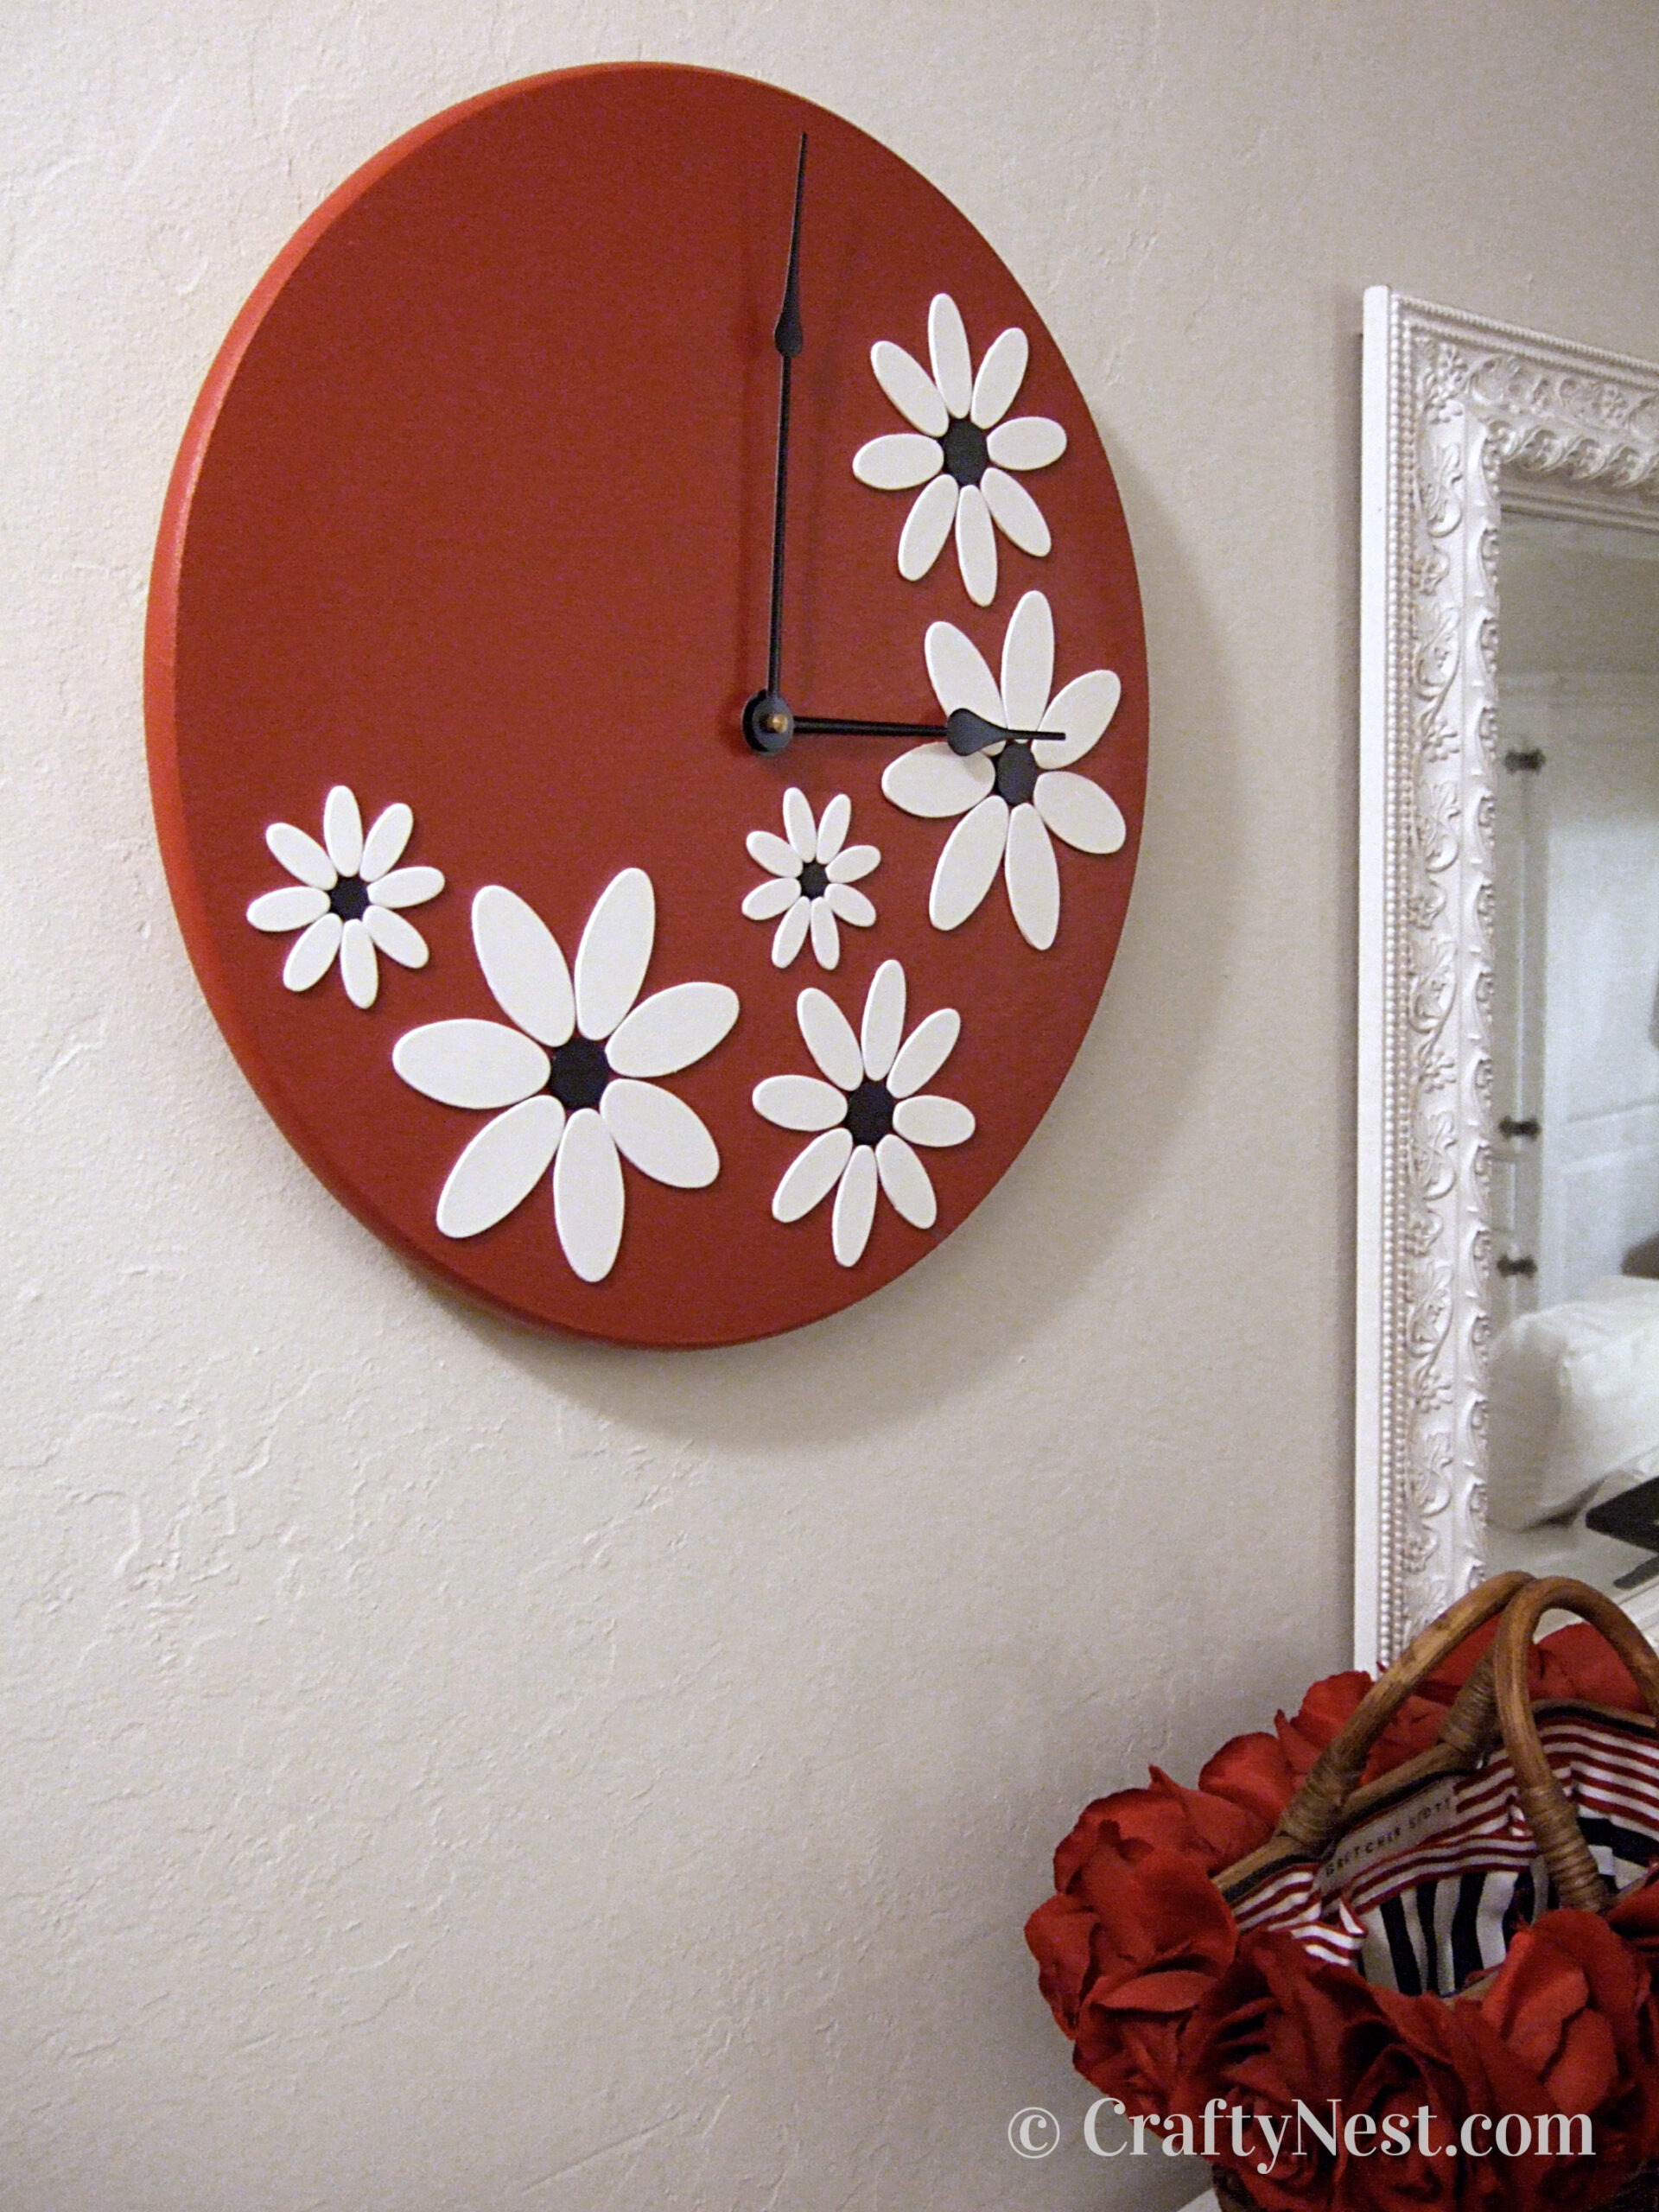 Big red clock with white flowers, photo